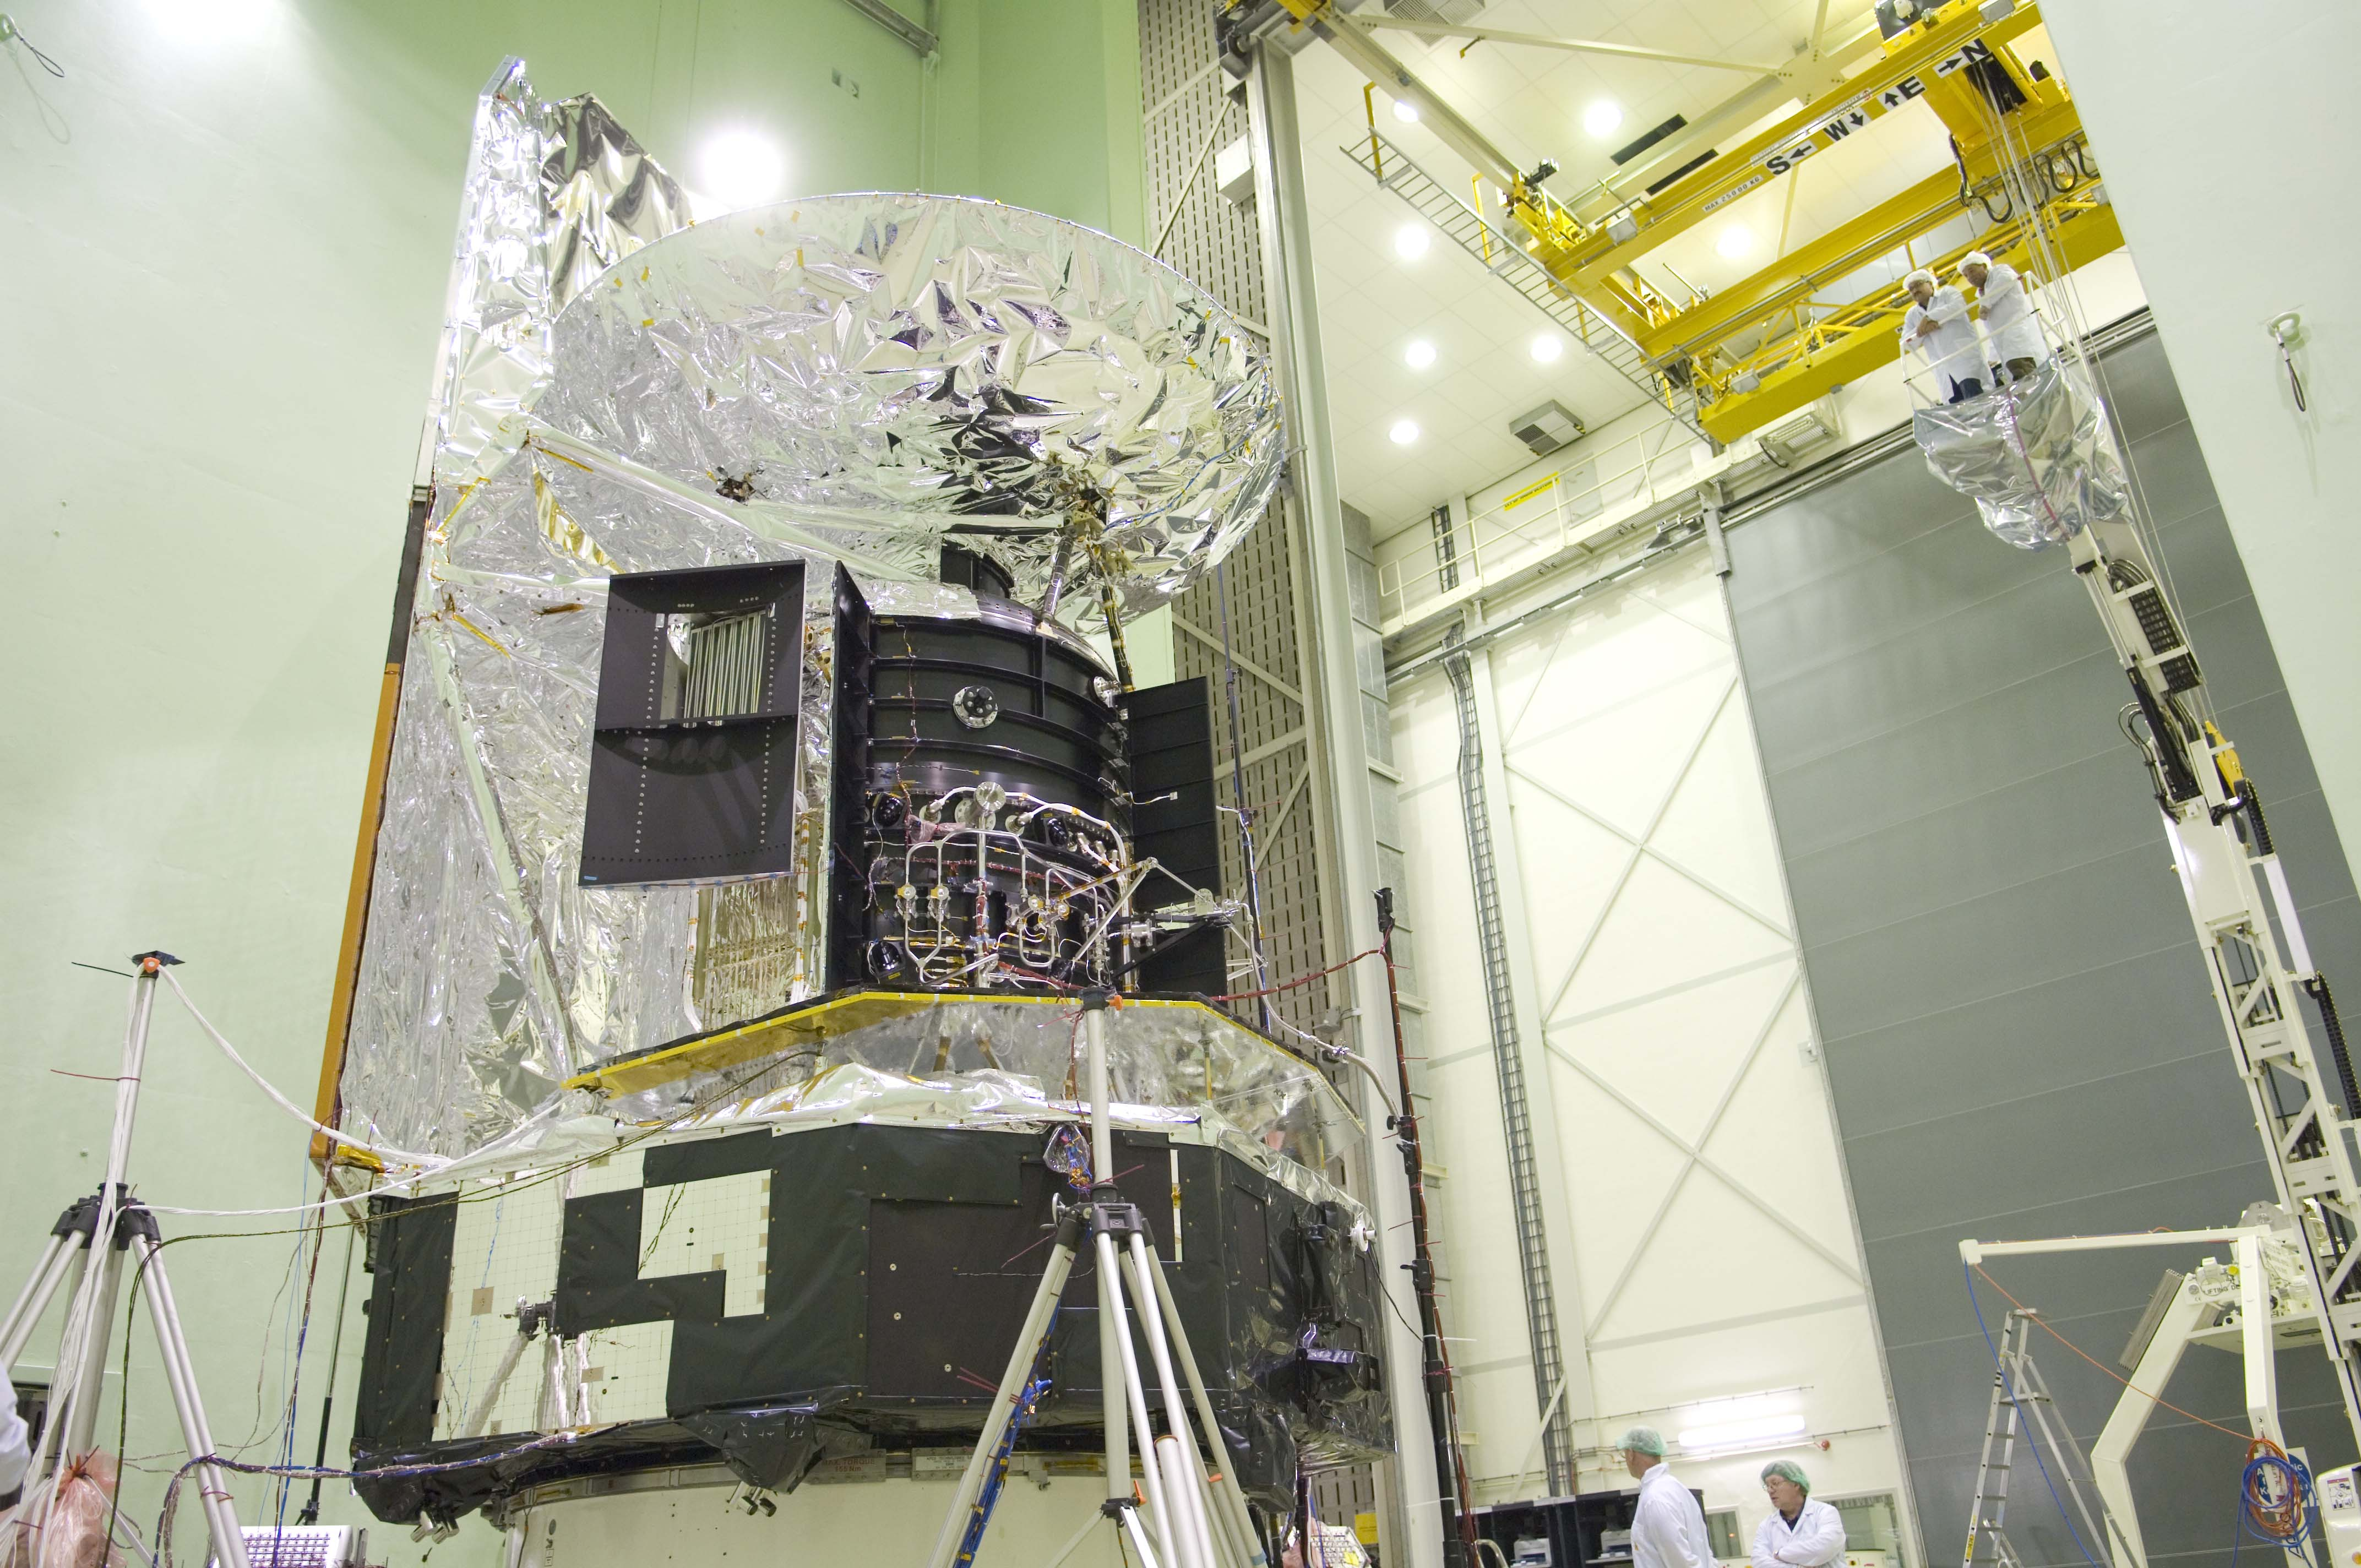 Herschel final test preparations in the Large European Acoustic Facility (LEAF)